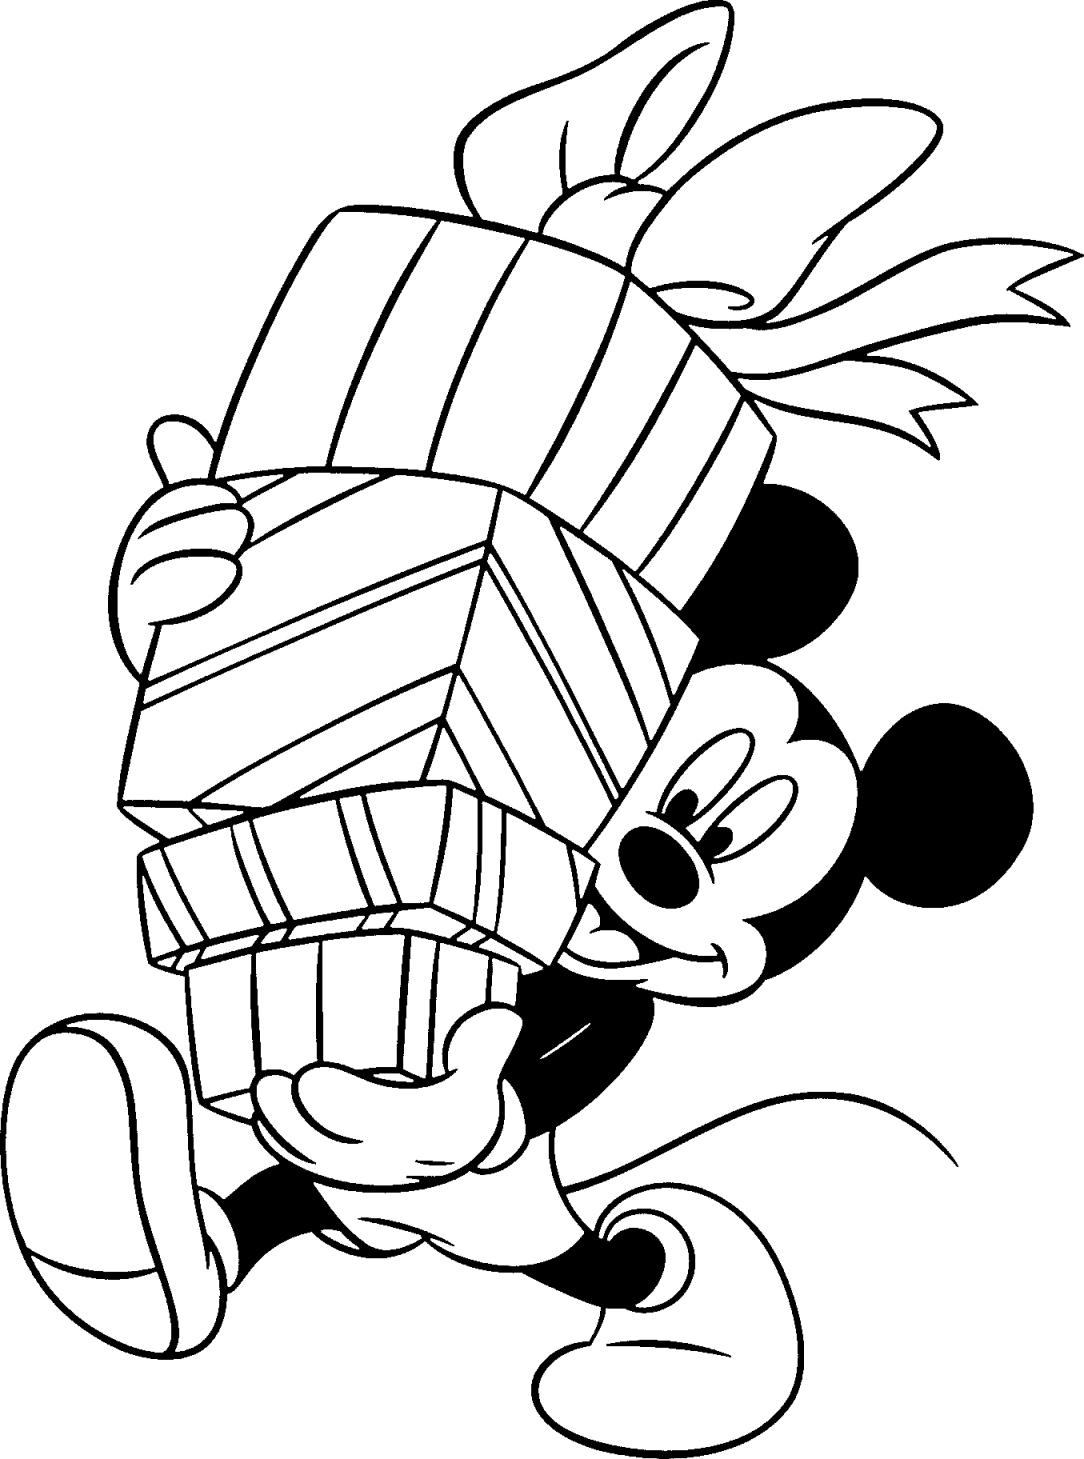 mickey mouse printable coloring pages - photo#11